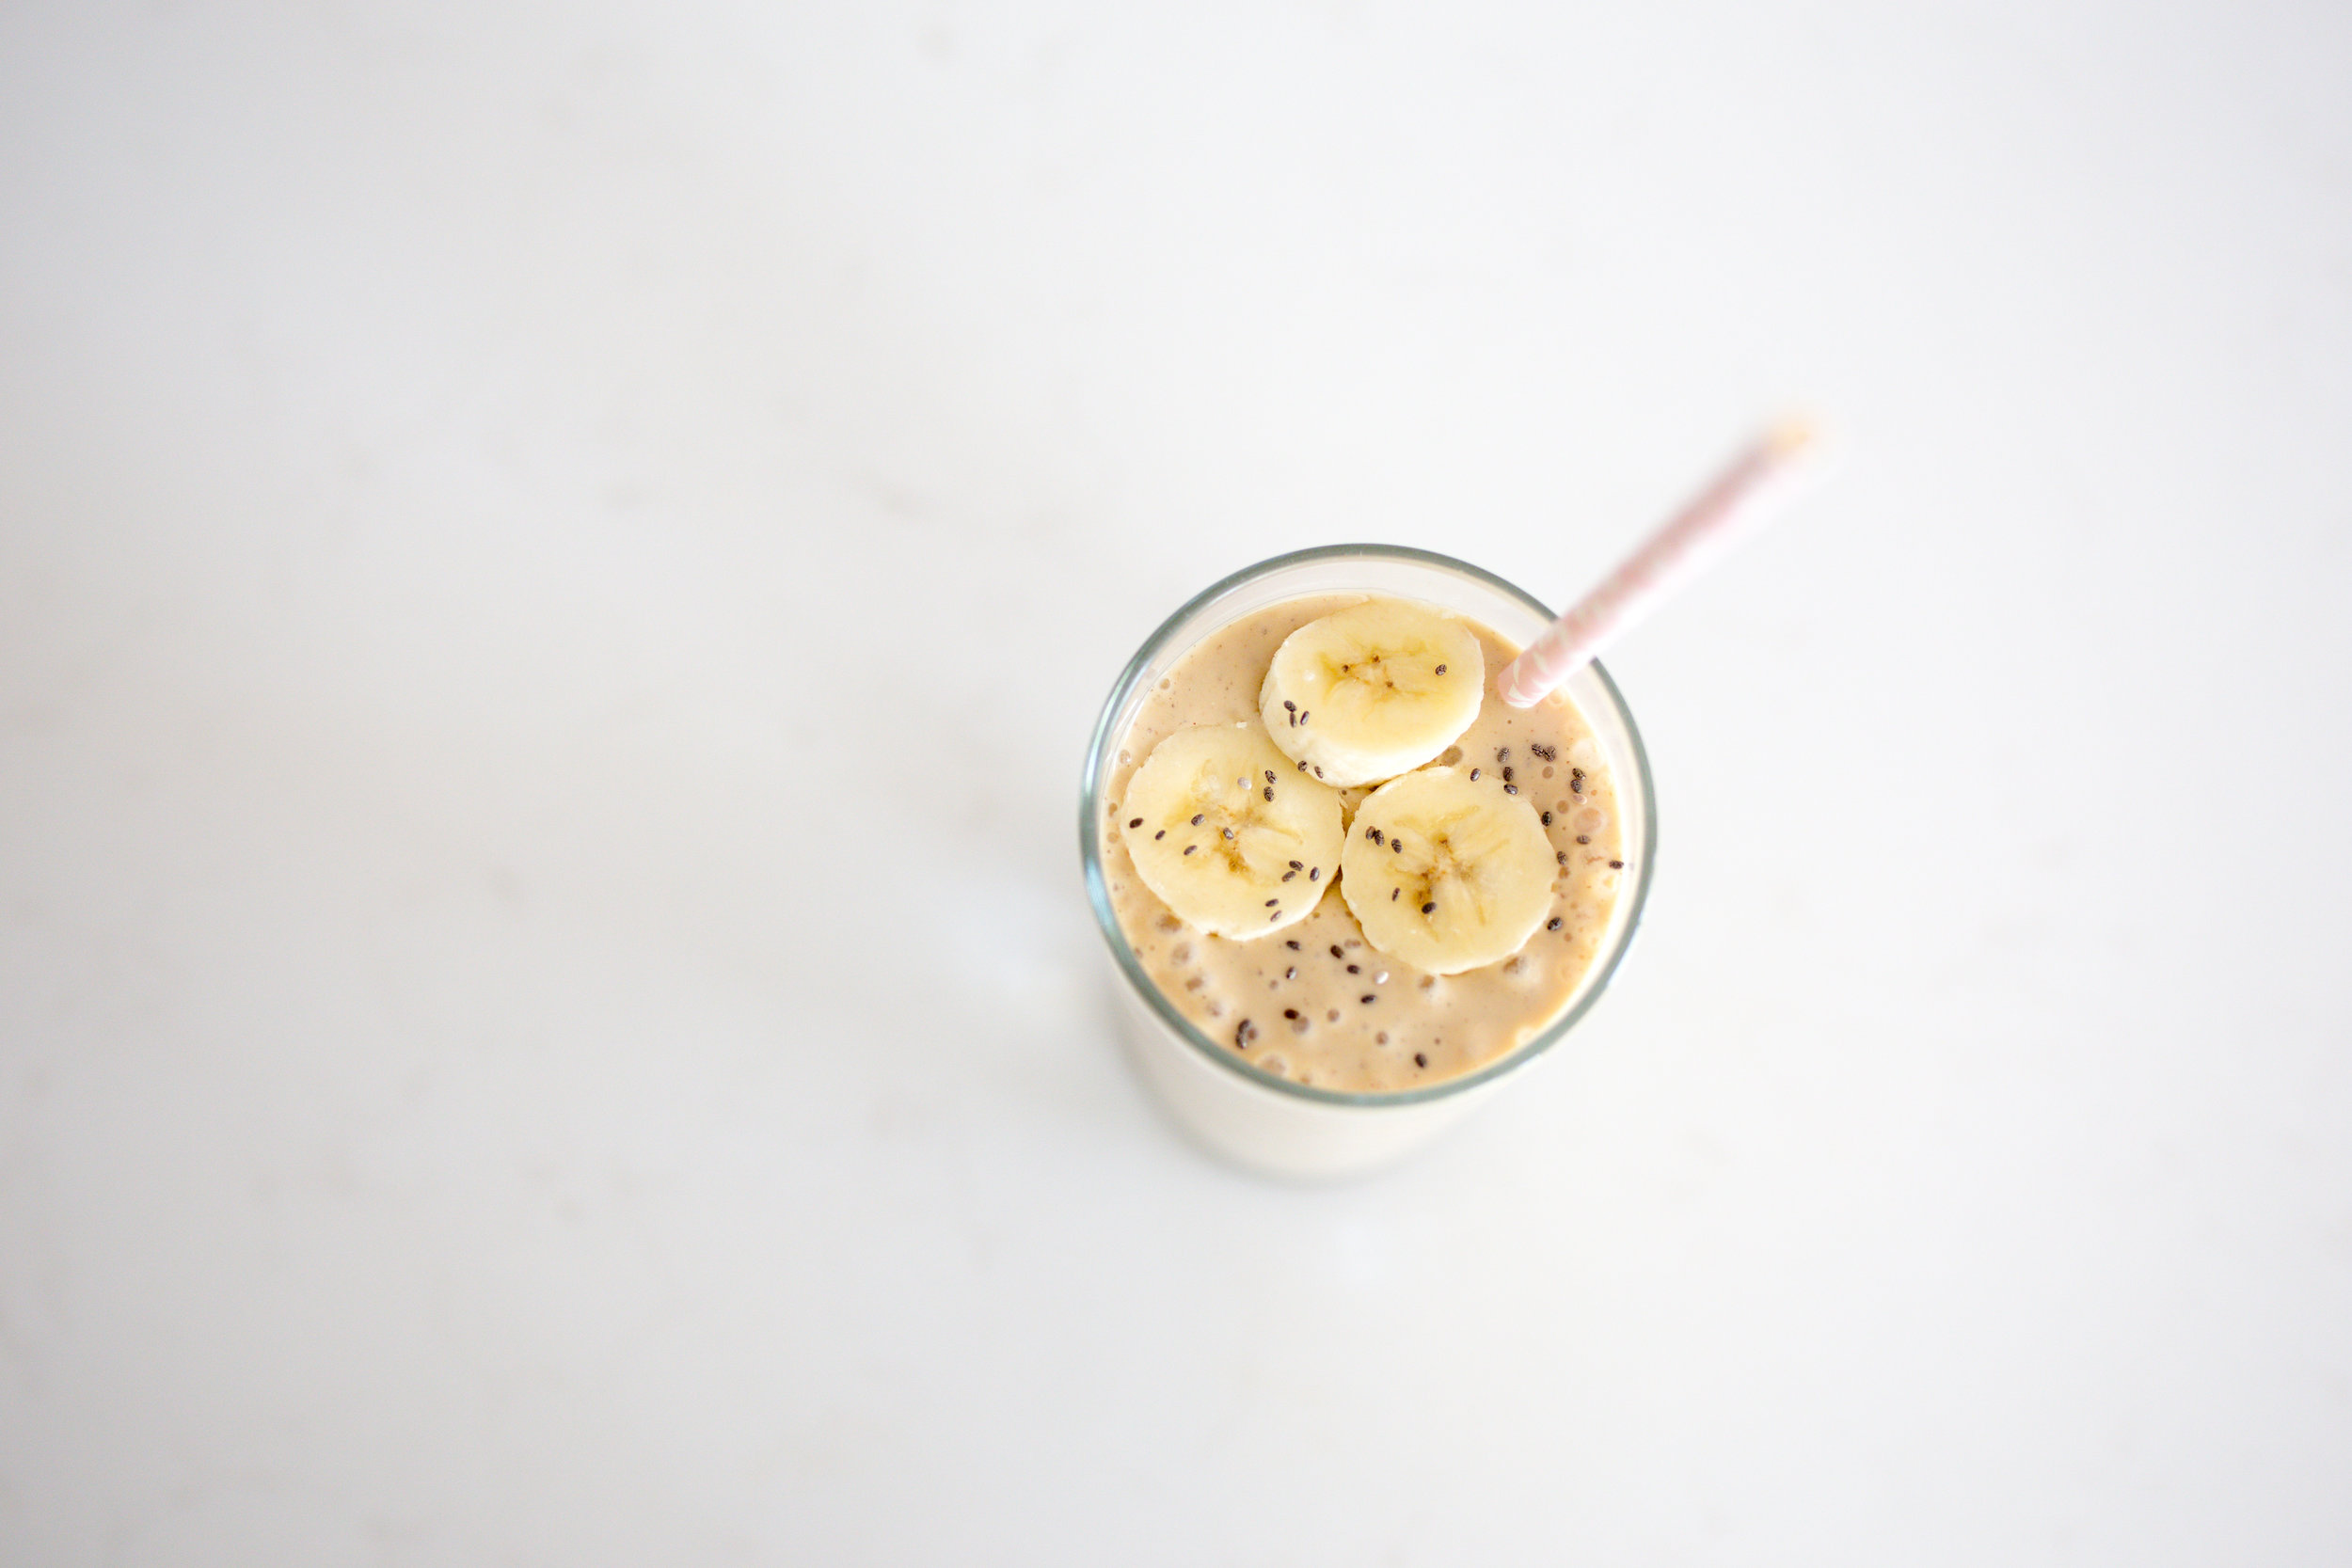 Banana & Peanut Butter Vegan Protein Smoothie